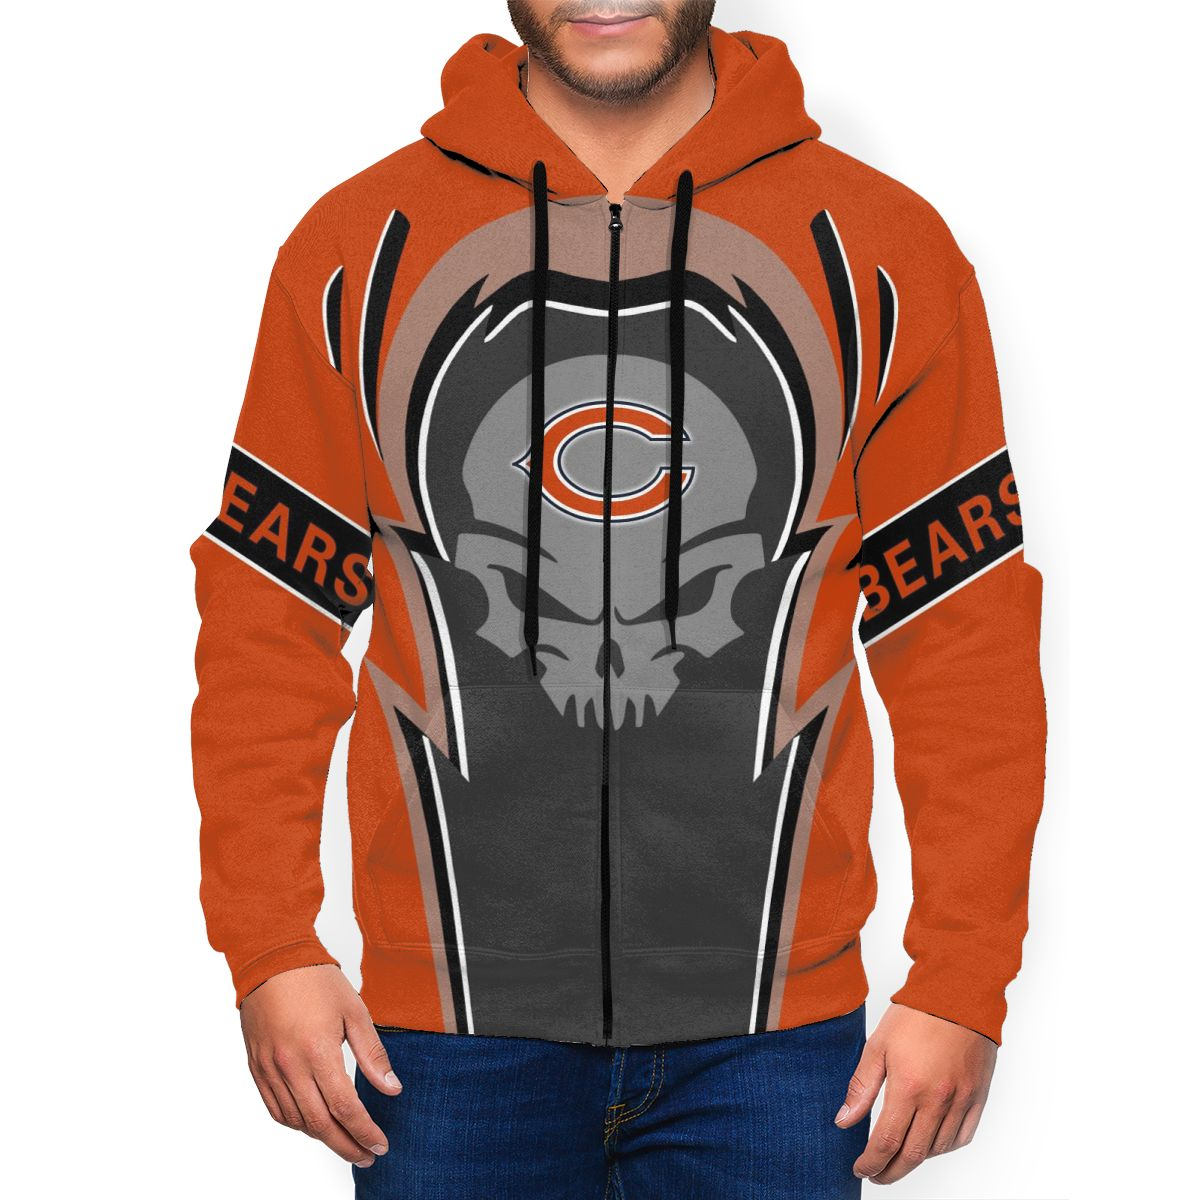 Bears Men's Zip Hooded Sweatshirt